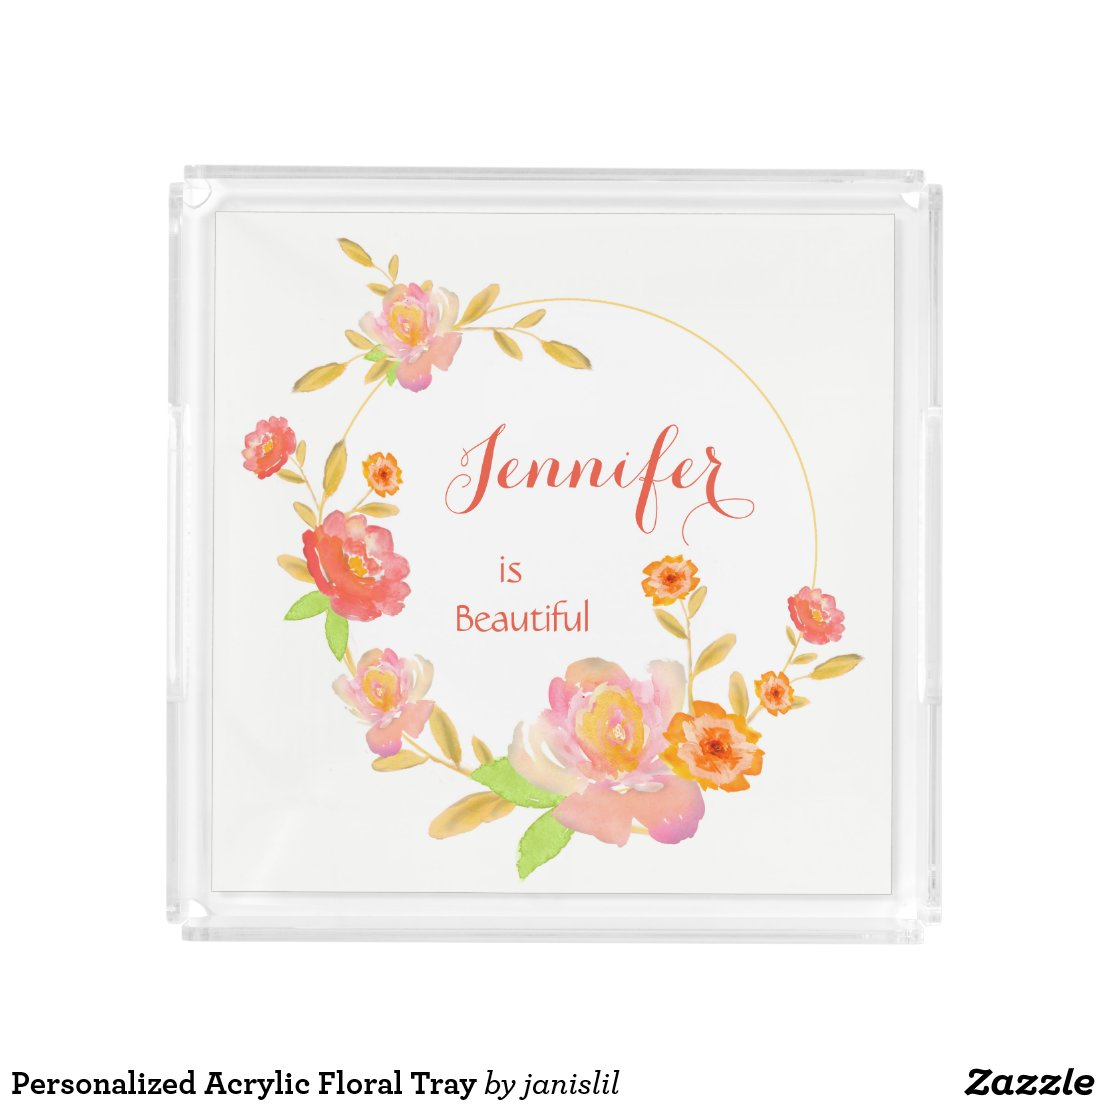 Personalized Acrylic Floral Tray